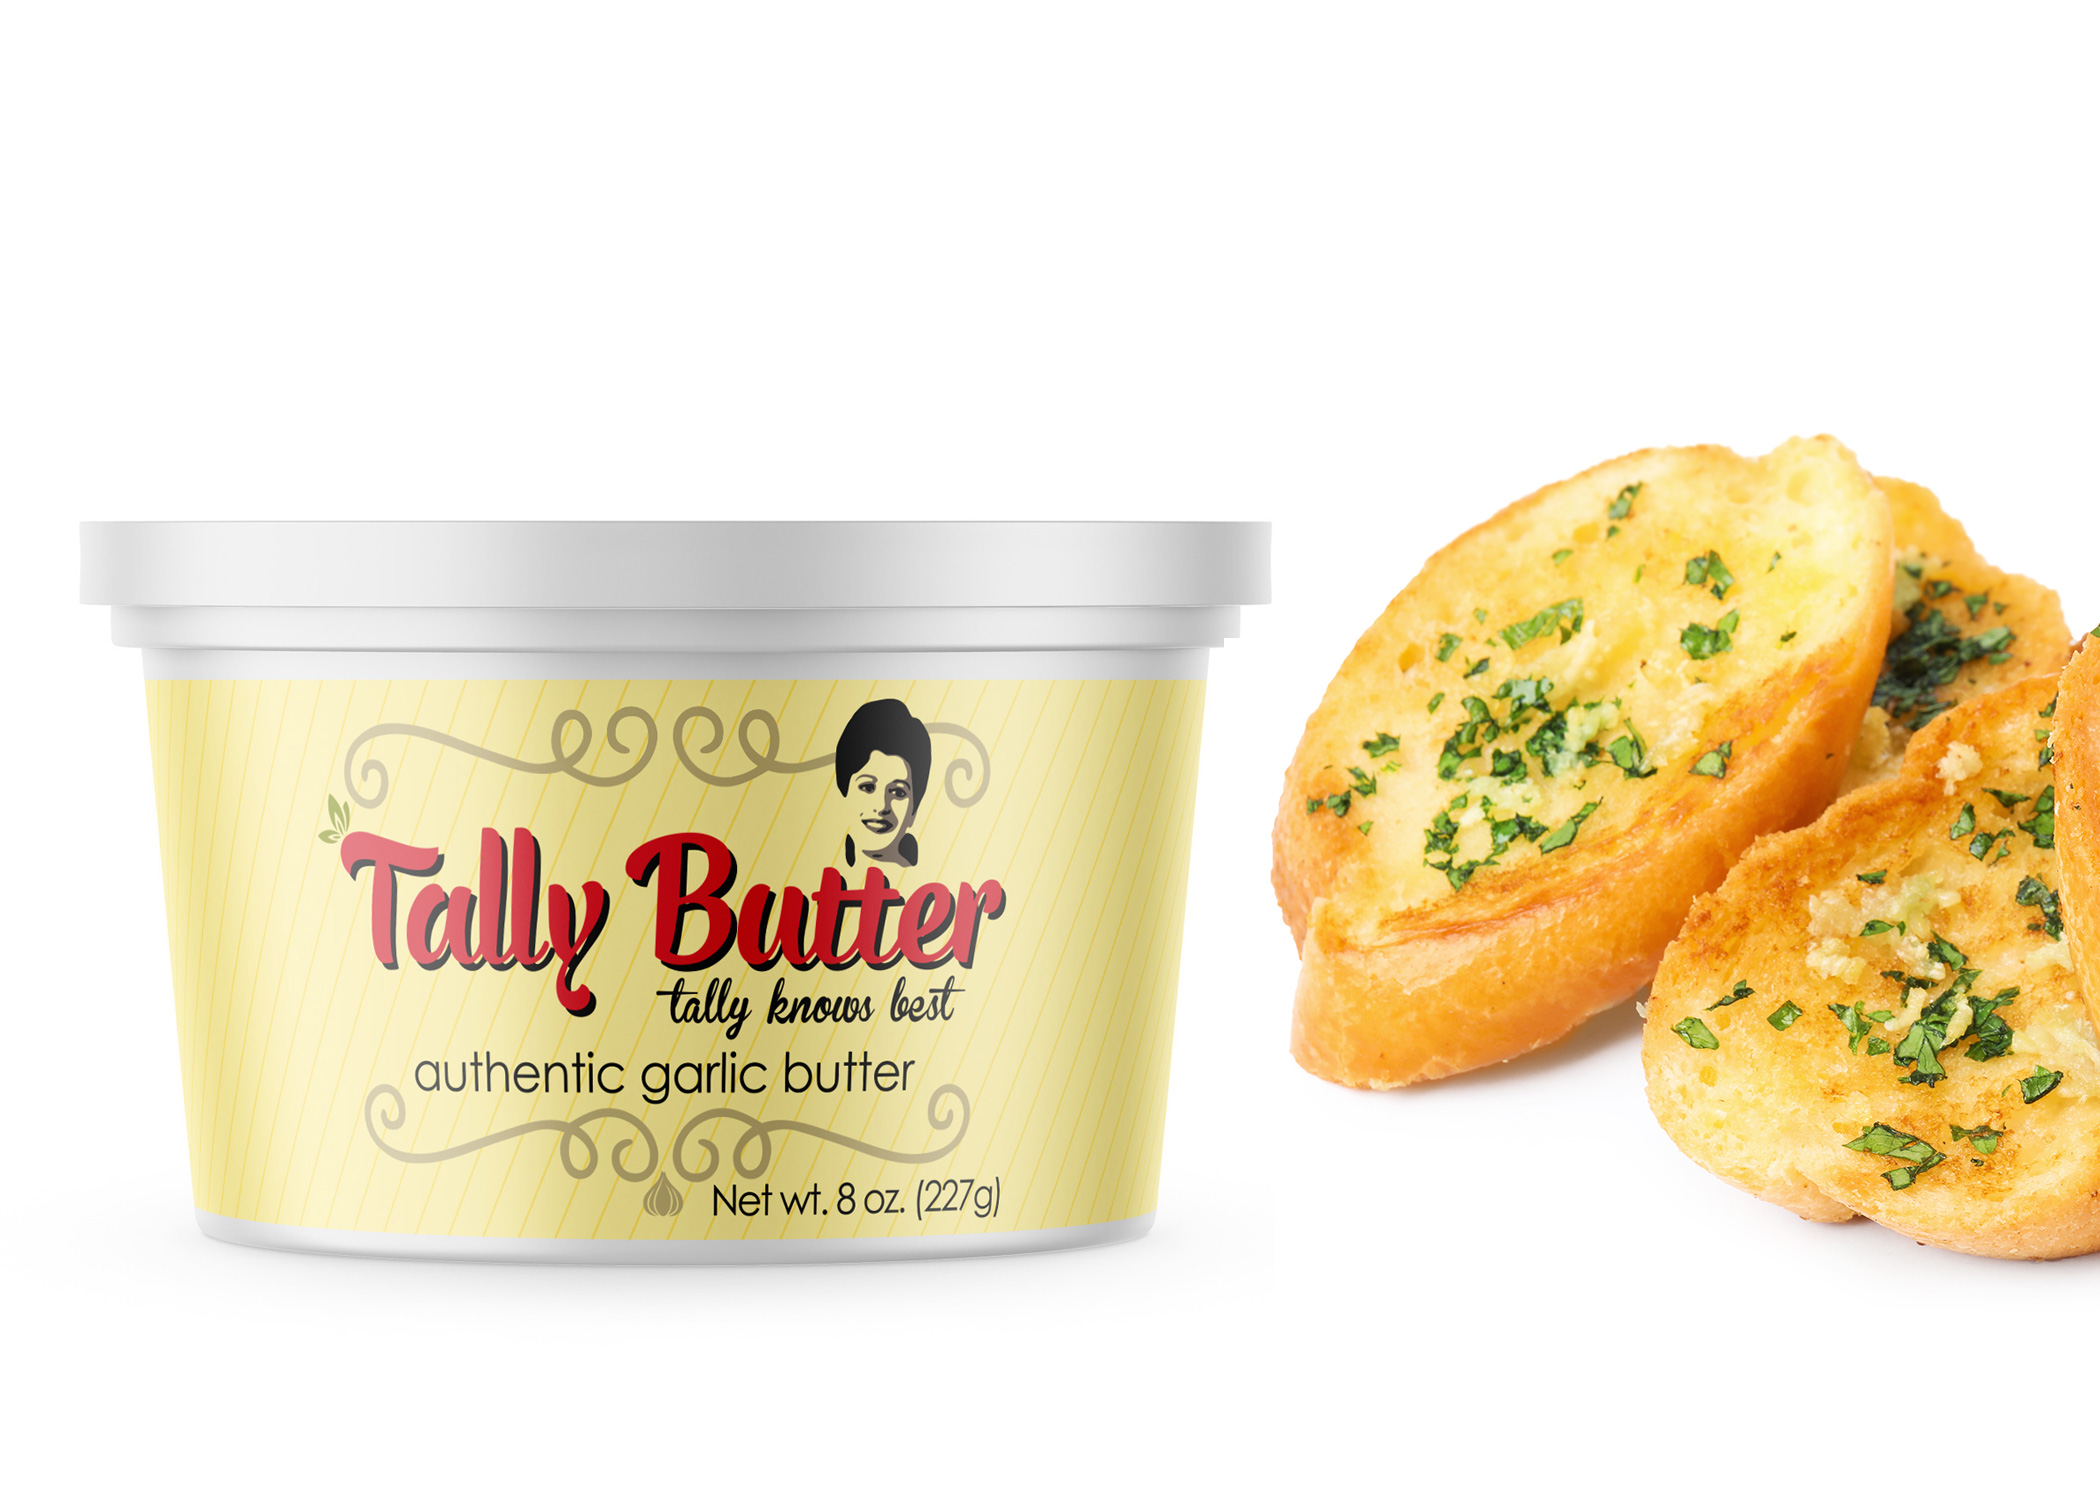 Tally Butter vintage-inspired packaging with logo over soft yellow canister and swirls and garlic clove design elements next to garlic bread.